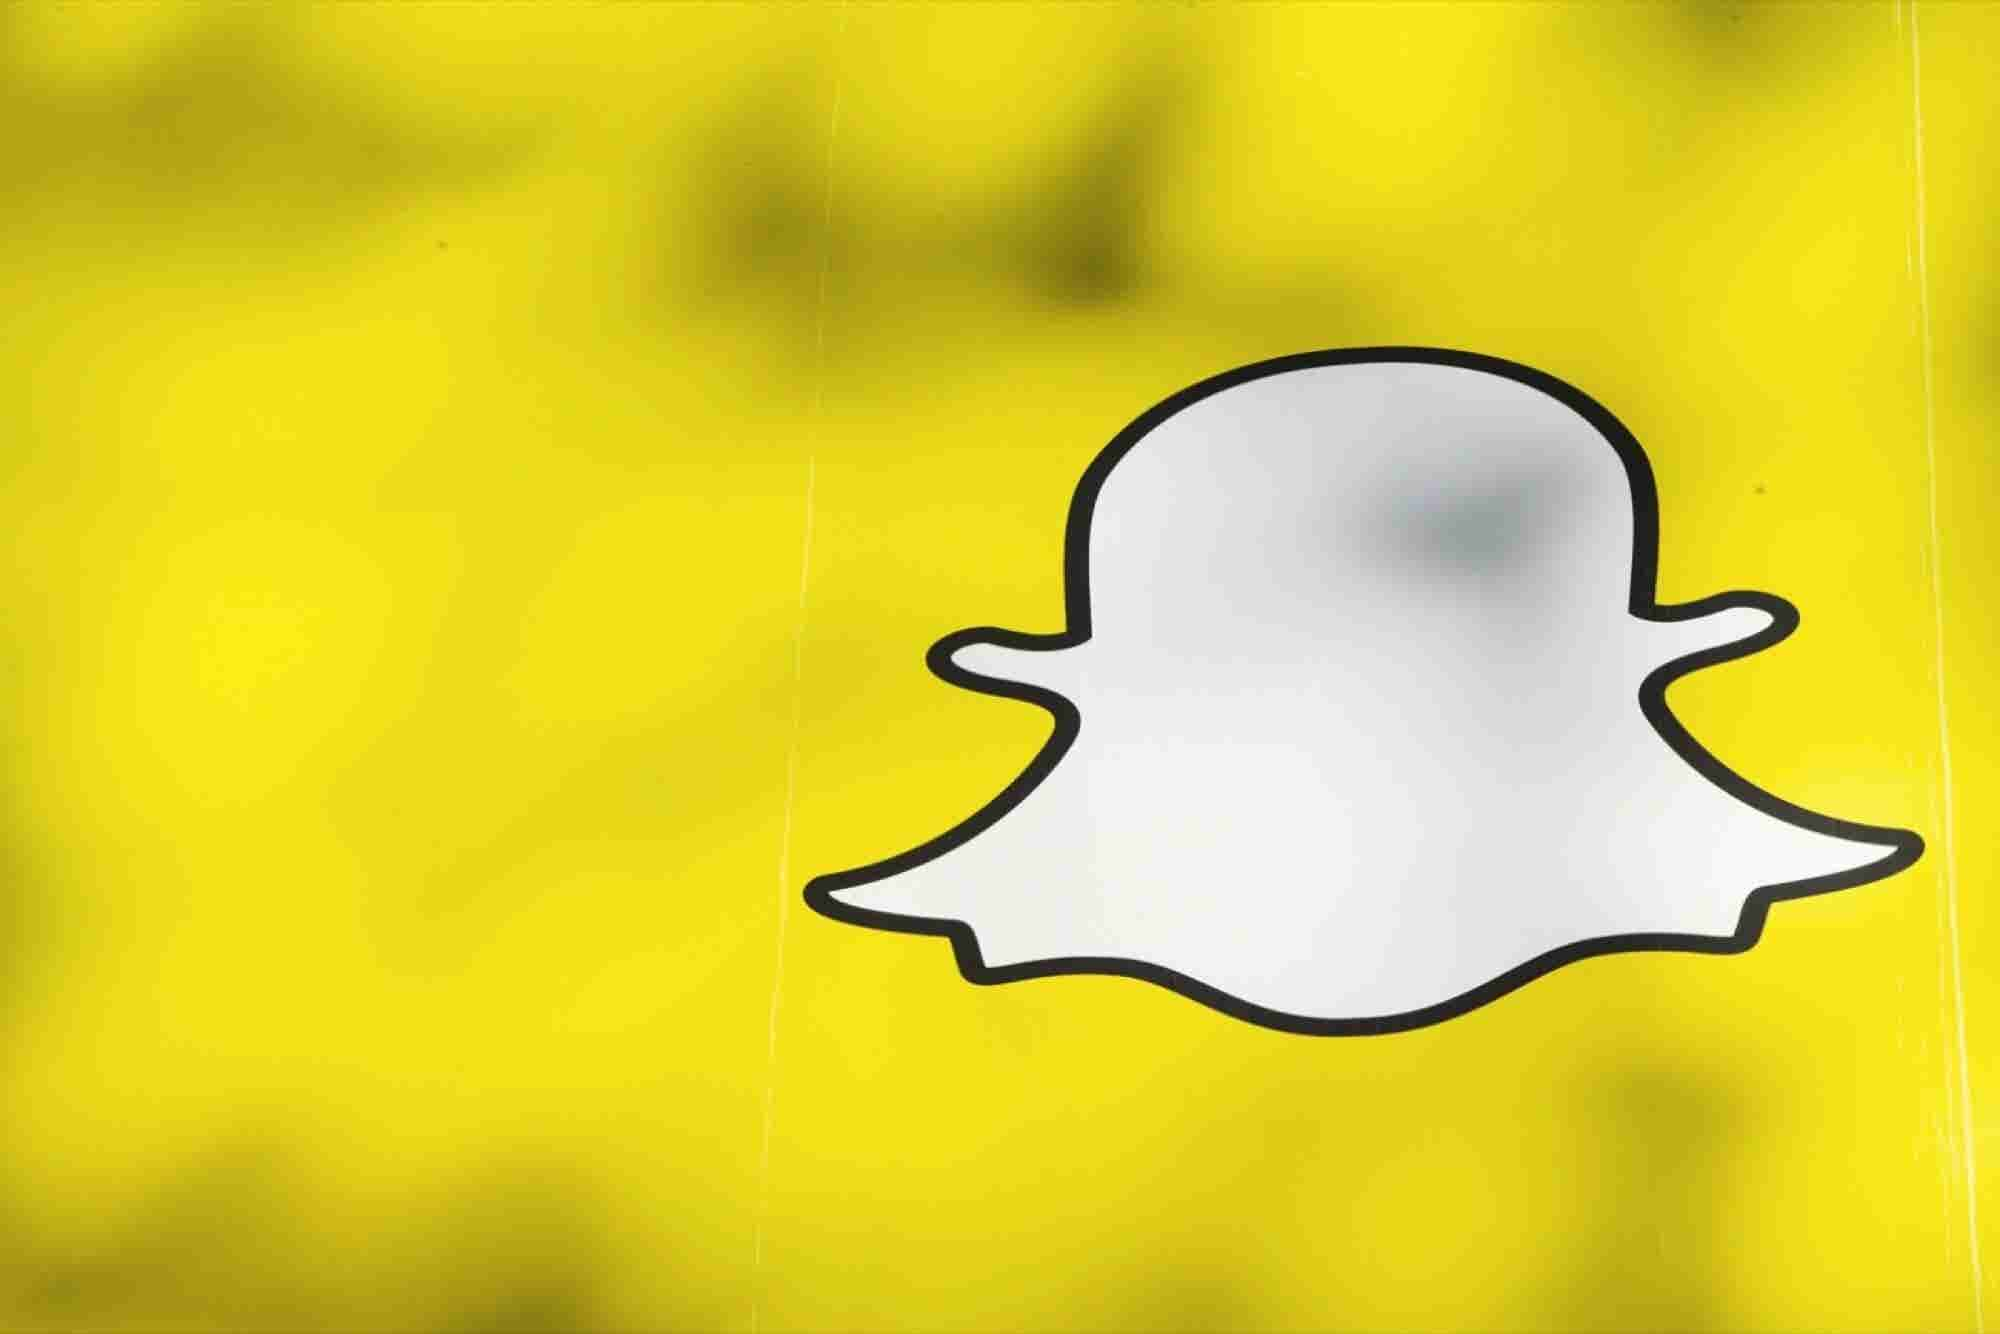 Snapchat Complies With Government Data Requests at a Higher Rate Than Yahoo, Twitter, Facebook and Google